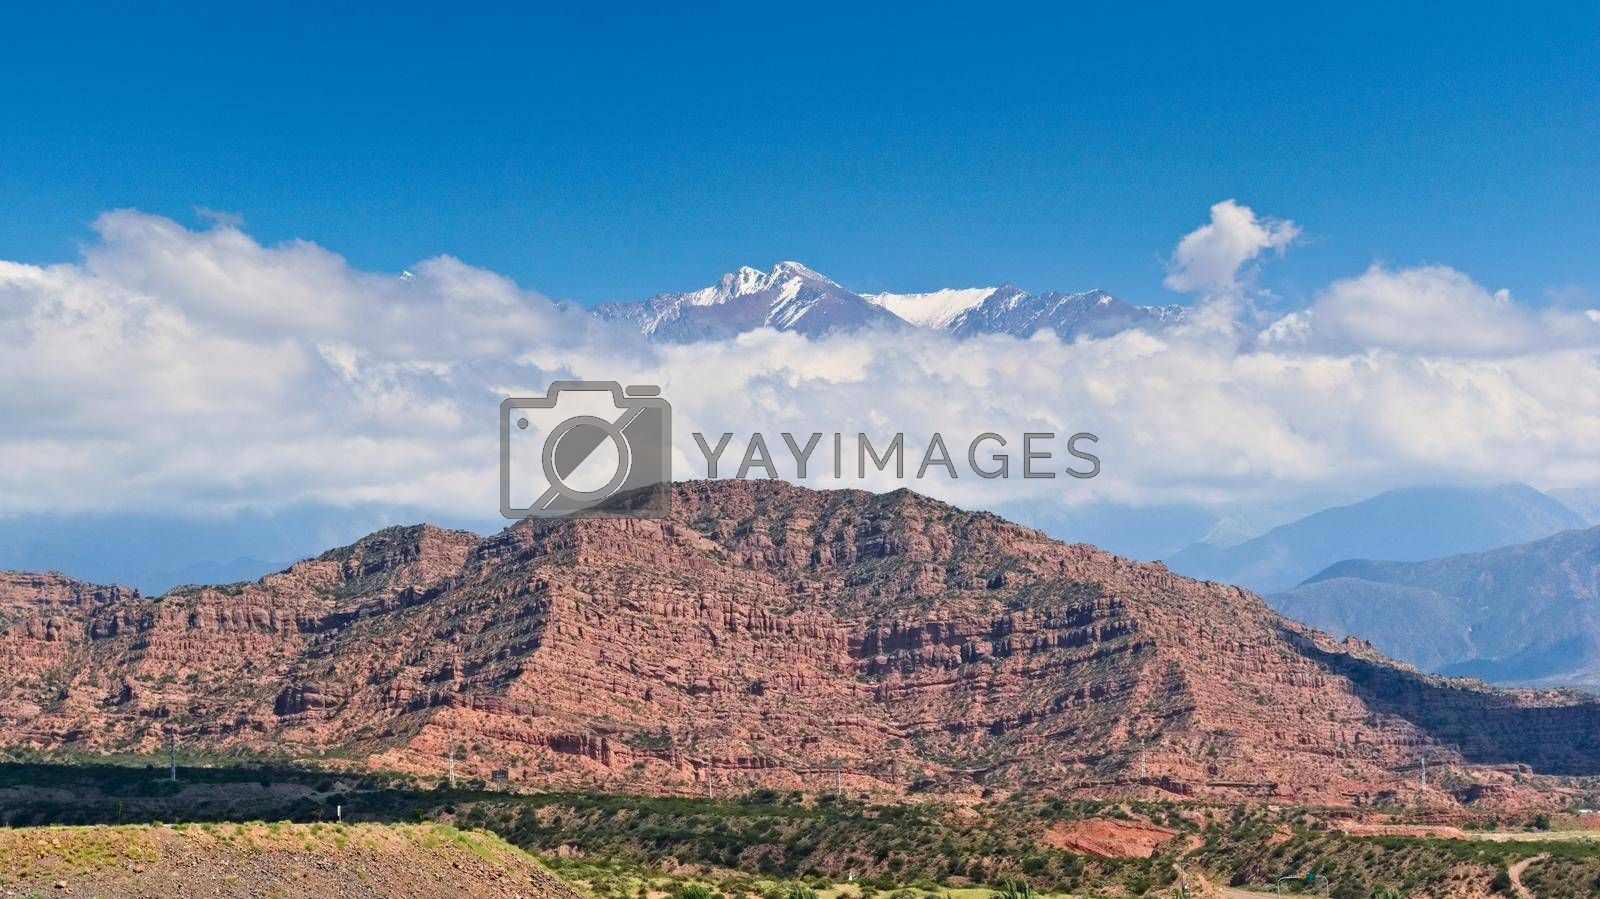 Royalty free image of Scenic view of the snow topped El Plata mountain range, in Mendoza, Argentina. by hernan_hyper